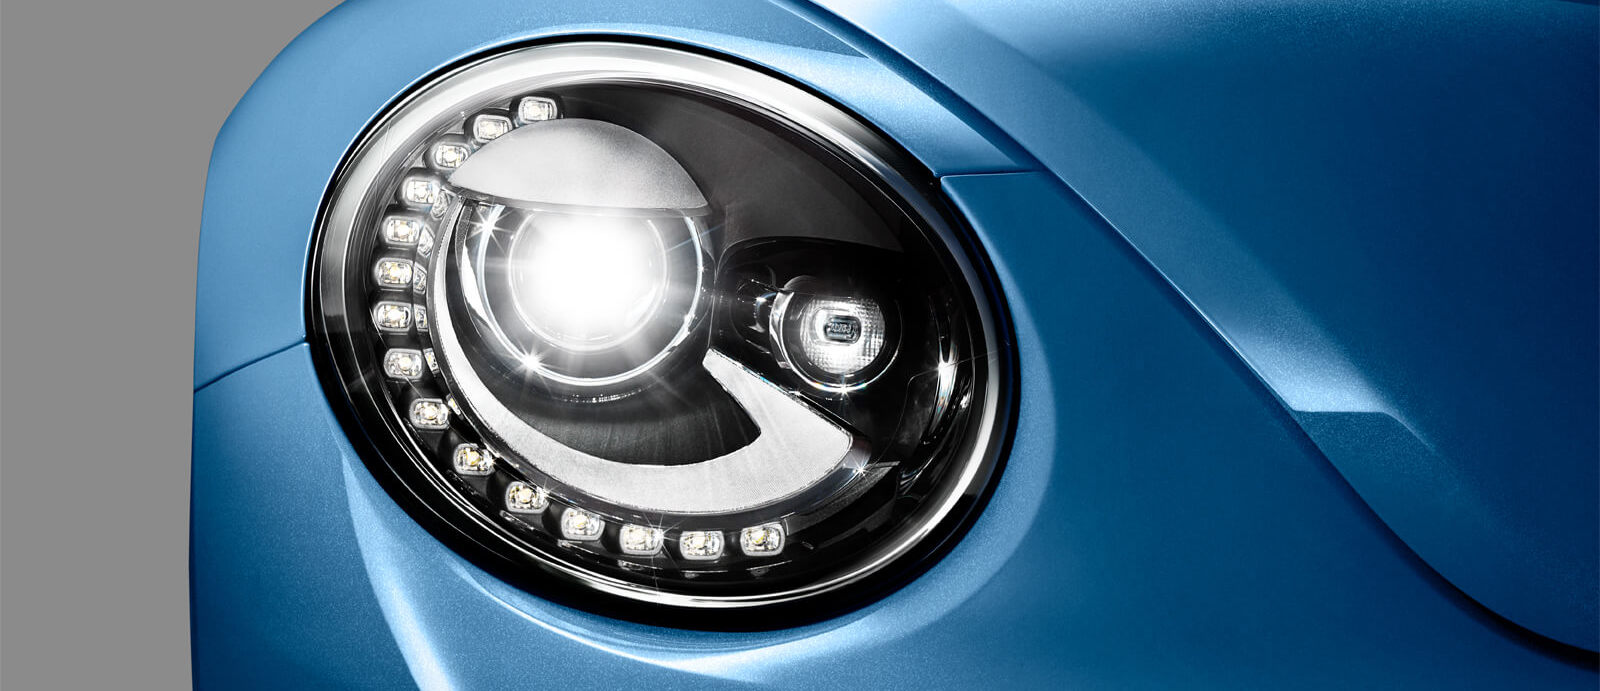 Available Bi-Xenon Headlamps of the 2019 Beetle